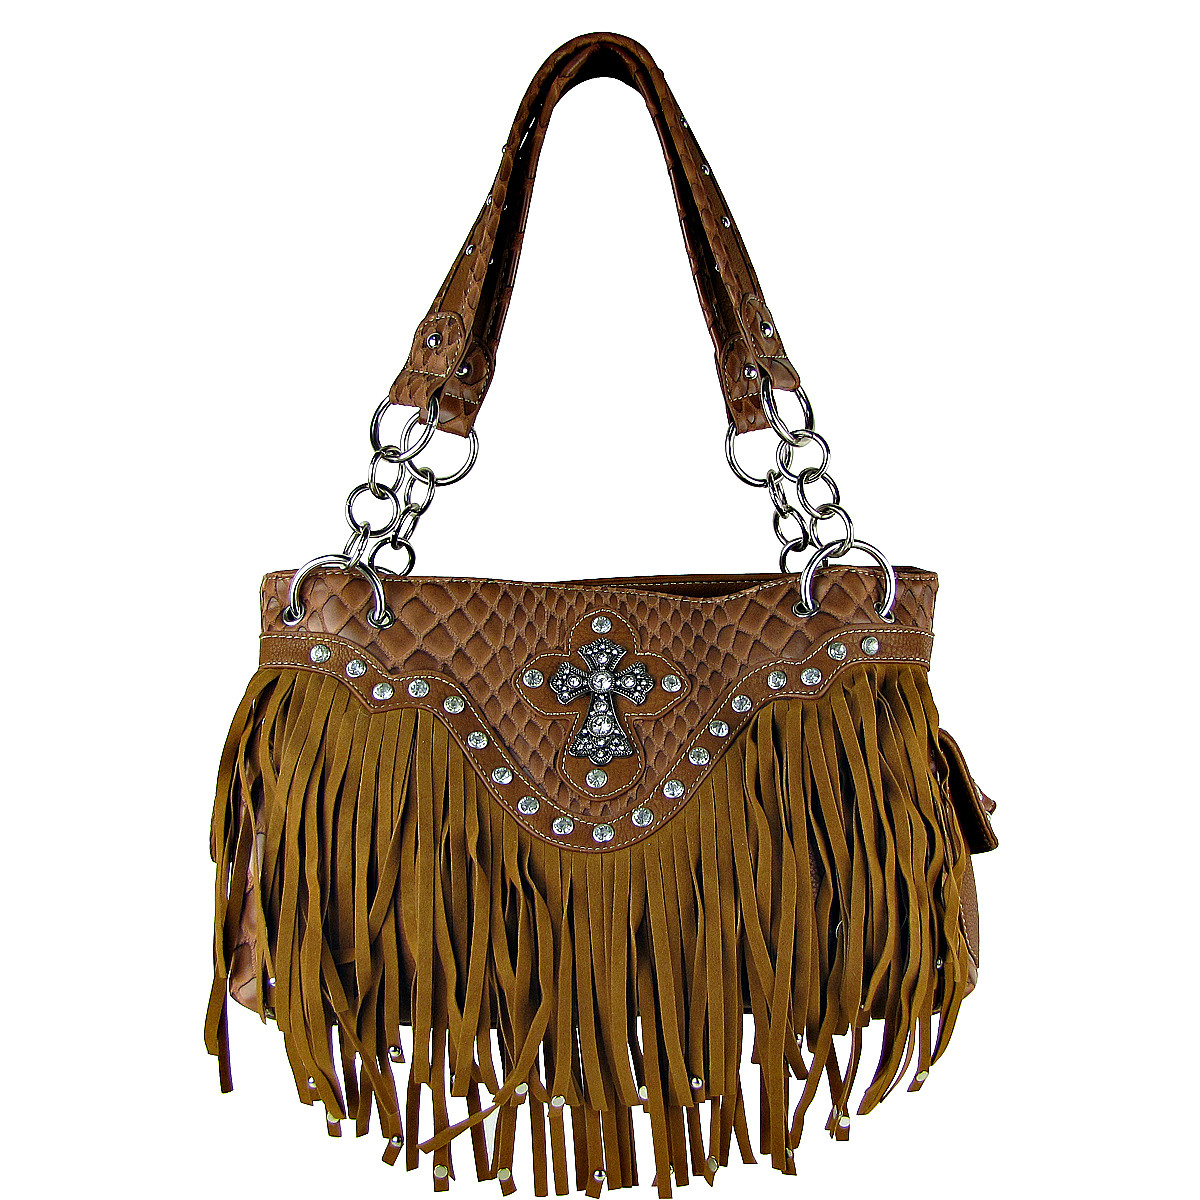 BROWN RHINESTONE CROSS FRINGE SHOULDER HANDBAG HB1-HL12164BRN